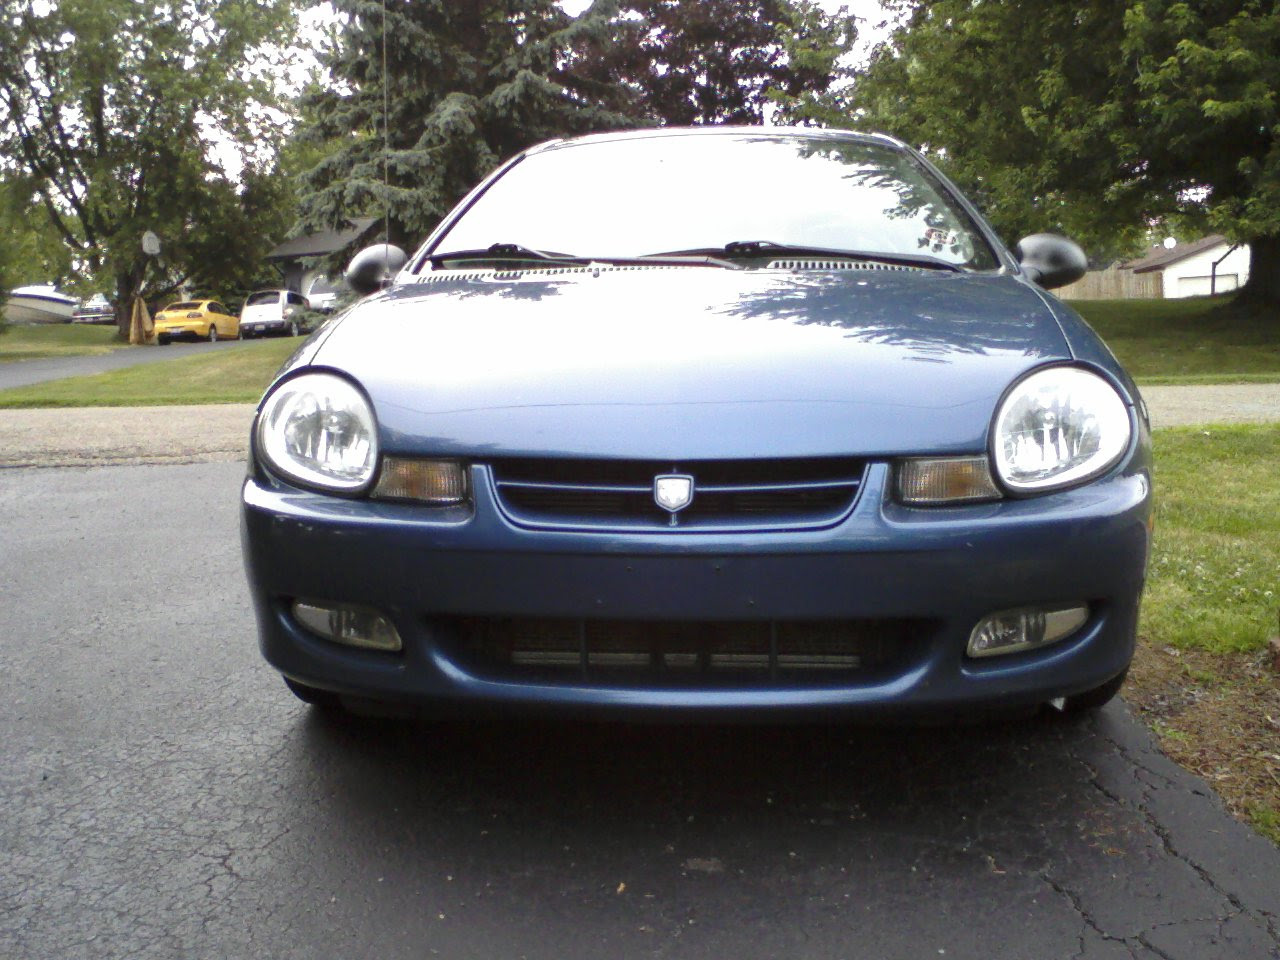 2002 Dodge Neon 4 Dr SXT Sedan picture